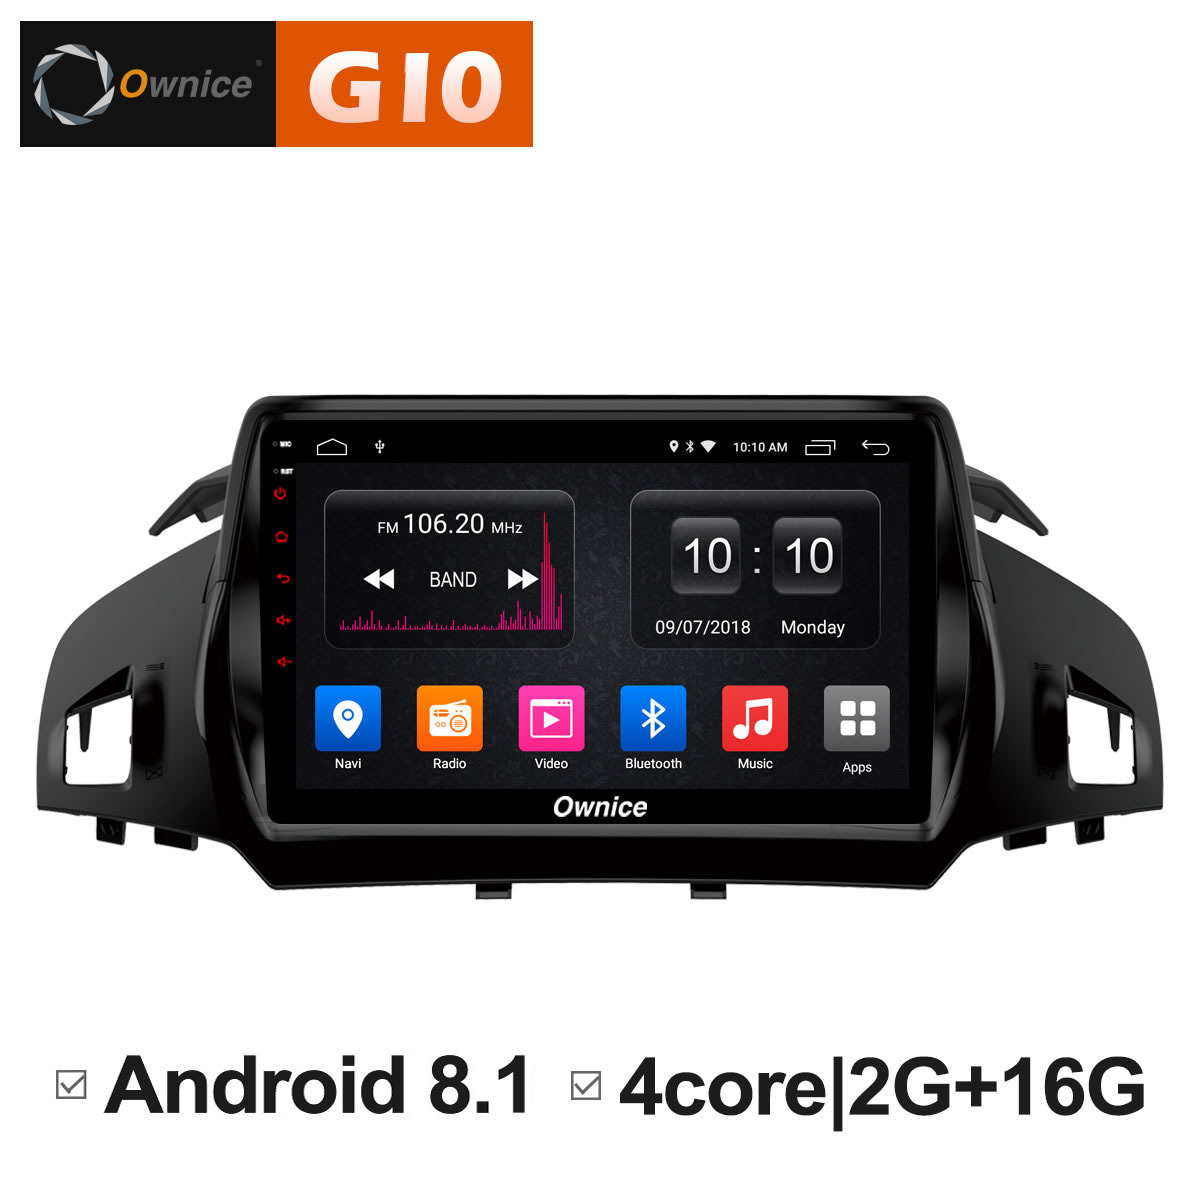 Android 8.1 Unit Car radio Stereo Audio GPS navigator dvd Intelligent Multimedia Player for Ford Kuga 2013 2014 2015 2016 2017 10 1 android car dvd multimedia player gps for nissan teana 2013 2014 2015 2016 altima car radio stereo navigator bluetooth